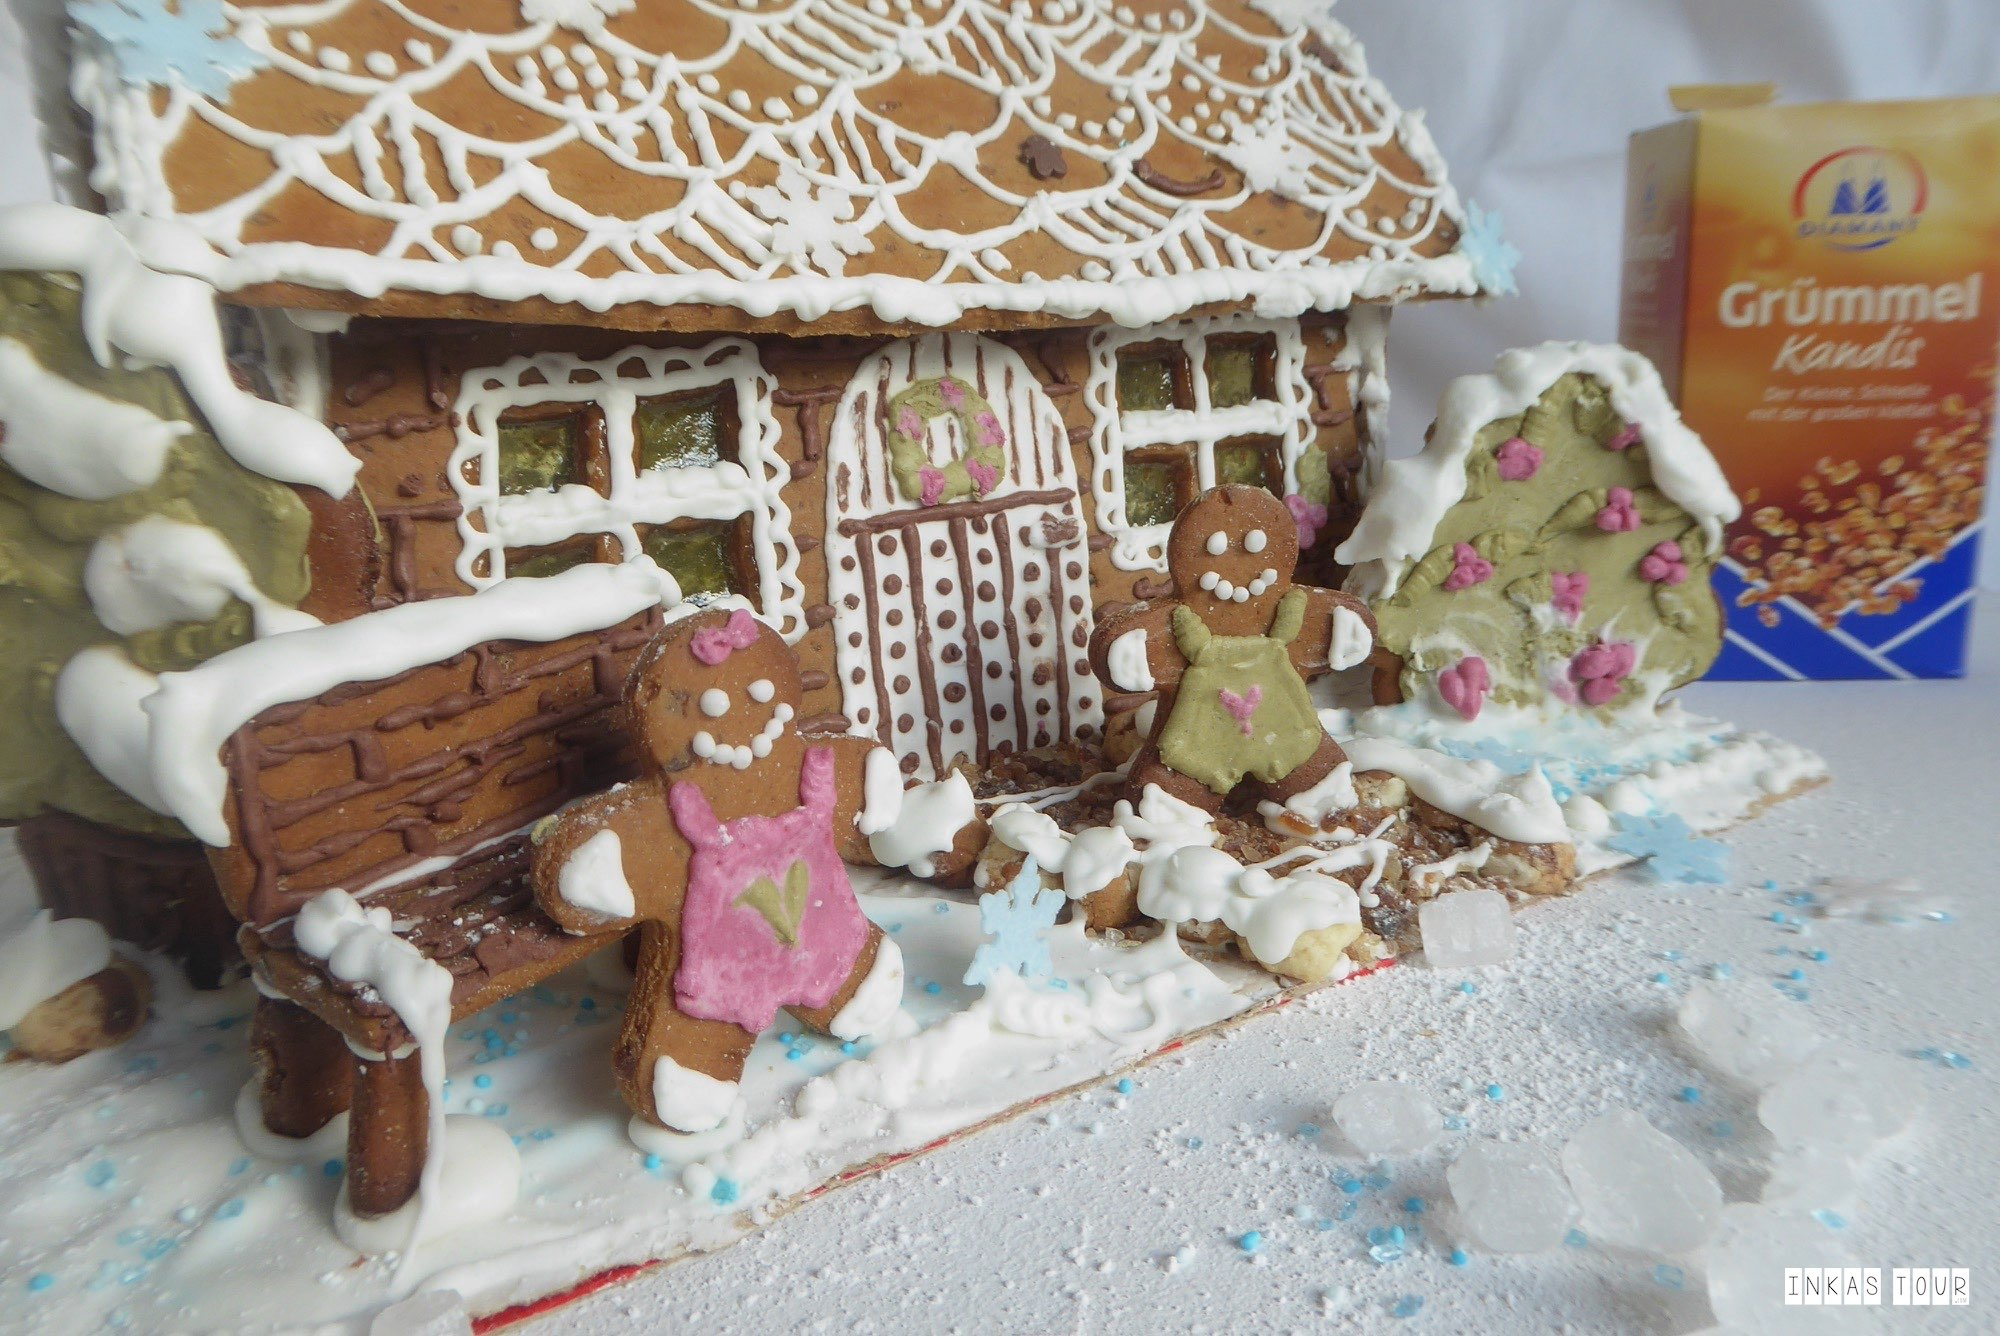 Gingerbread House Lebkuchen Haus Decorate and Bake Recipe Rezept Christmas Advents Calender Customs and Traditions Inkas Tour Travelblog Baking Blog Food around the World Baking a Gingerbread House